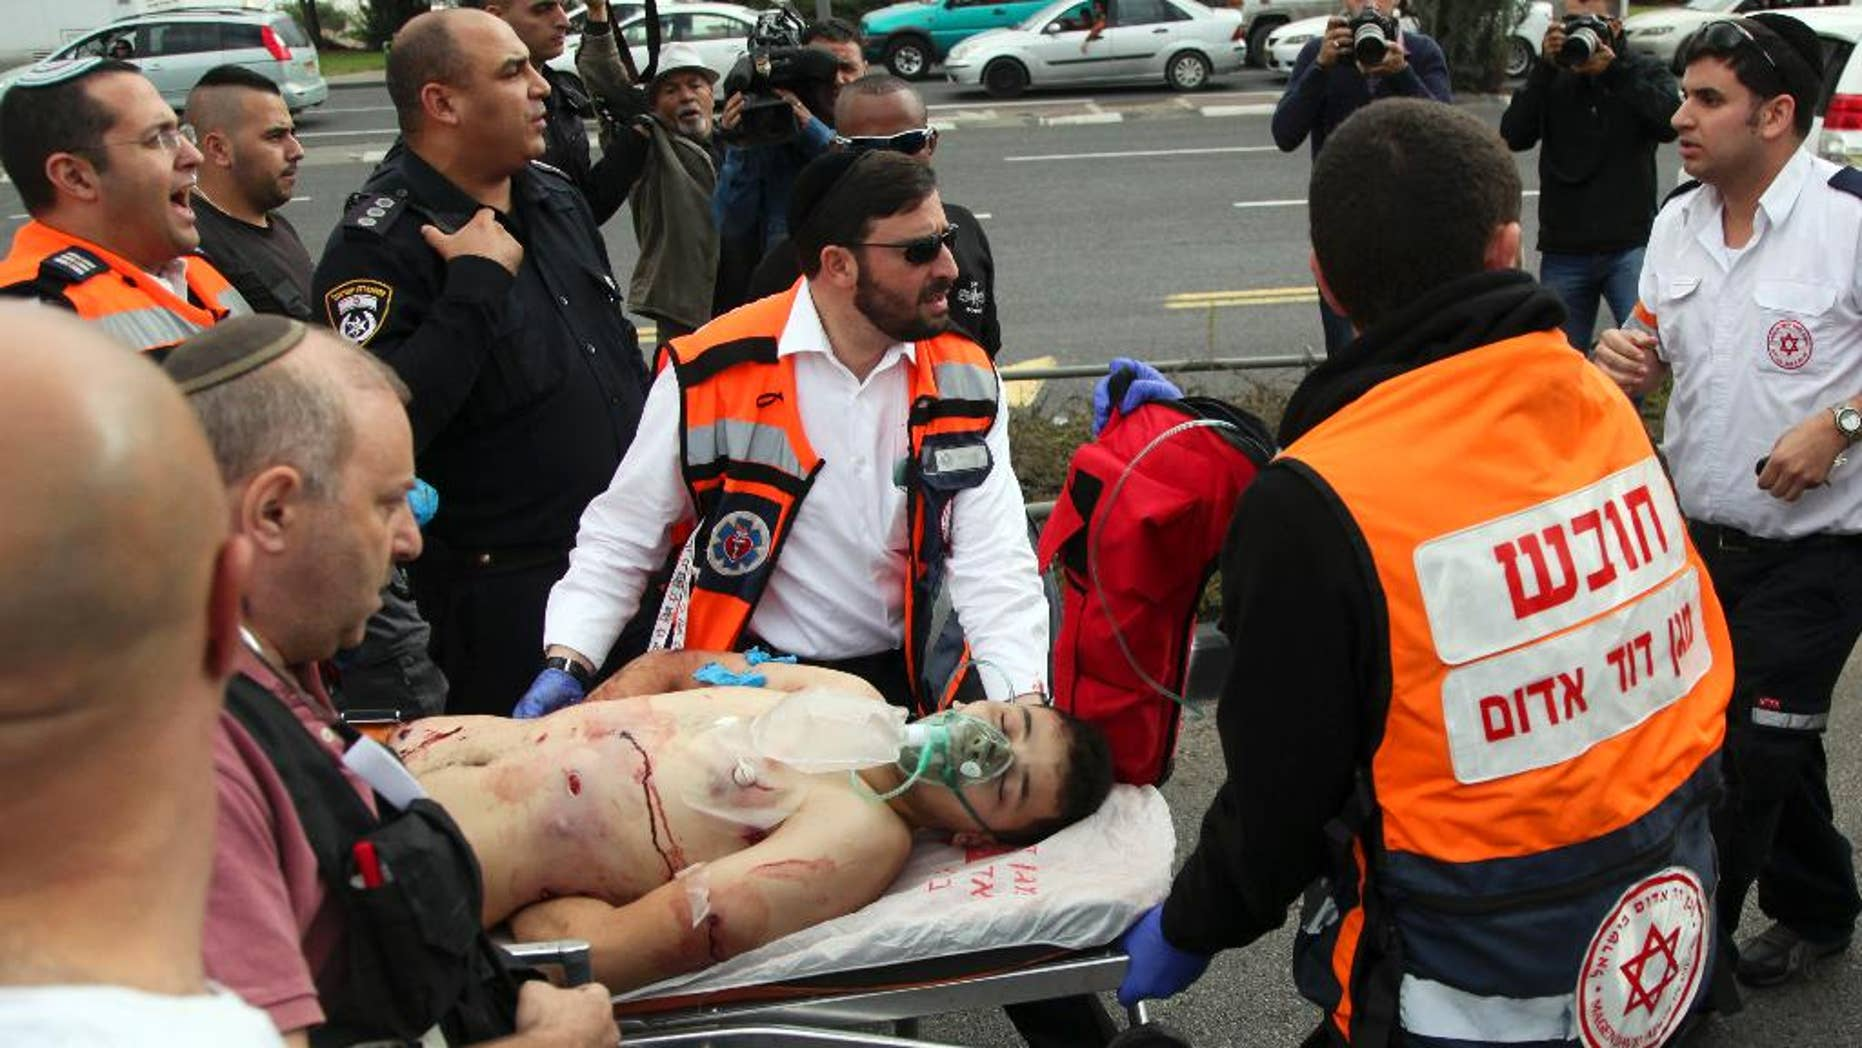 Paramedics evacuate a wounded Palestinian attacker in Jerusalem on Friday, Oct. 30, 2015. The Palestinian stabbed and seriously wounded a man at a station of Jerusalem's light rail Friday before he was shot and wounded by Israeli forces, police said. (AP Photo/Mahmoud Illean)